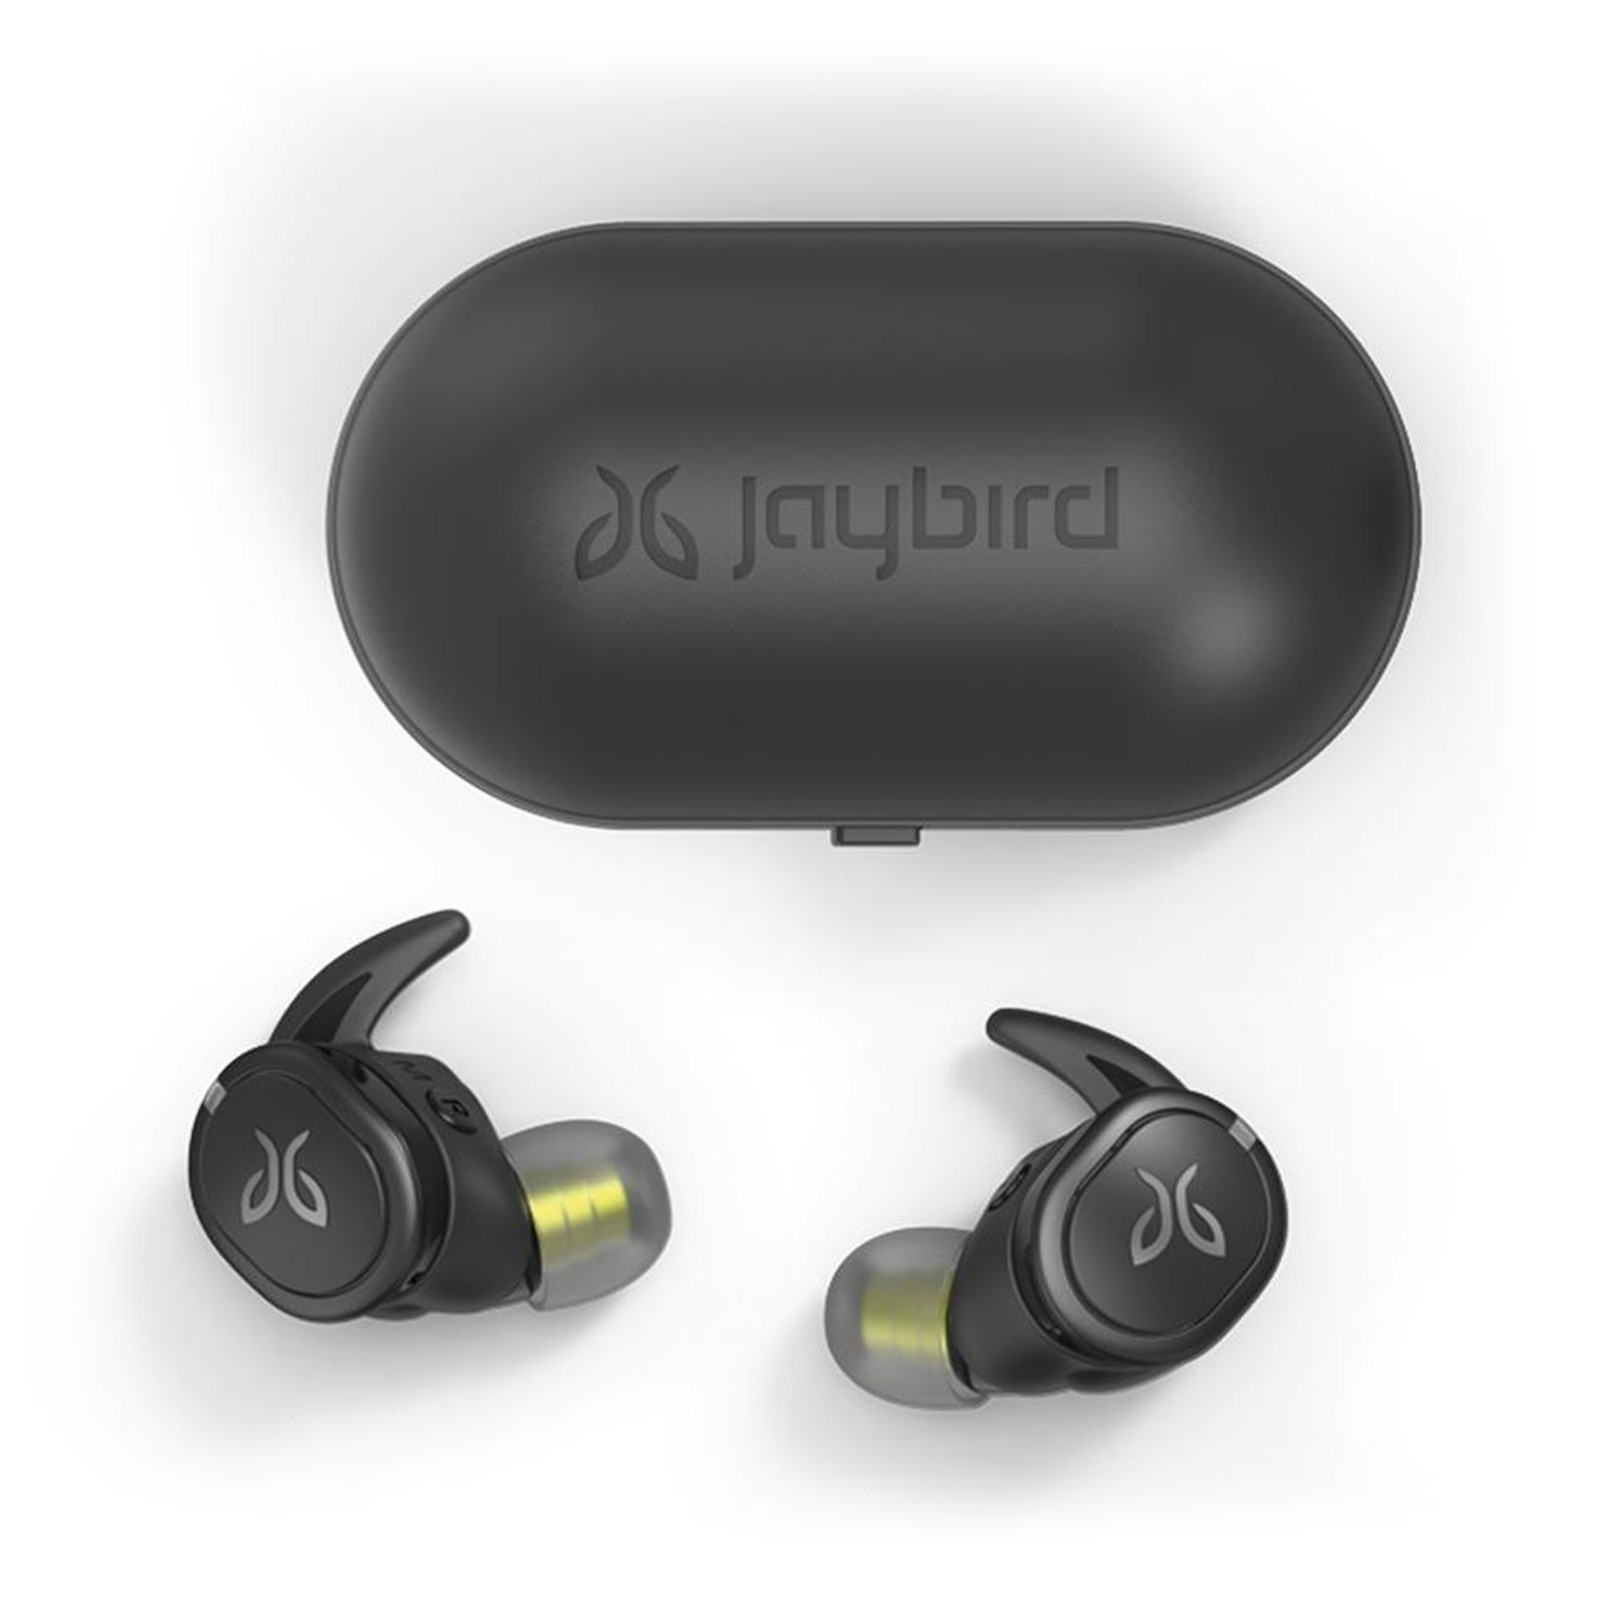 7f885cac2a9 Jaybird Run XT True Wireless In-Ear Sports Headphones - Black Flash - IPX7  water & sweat resist, premium sound with EQ, fast charging, secure fit